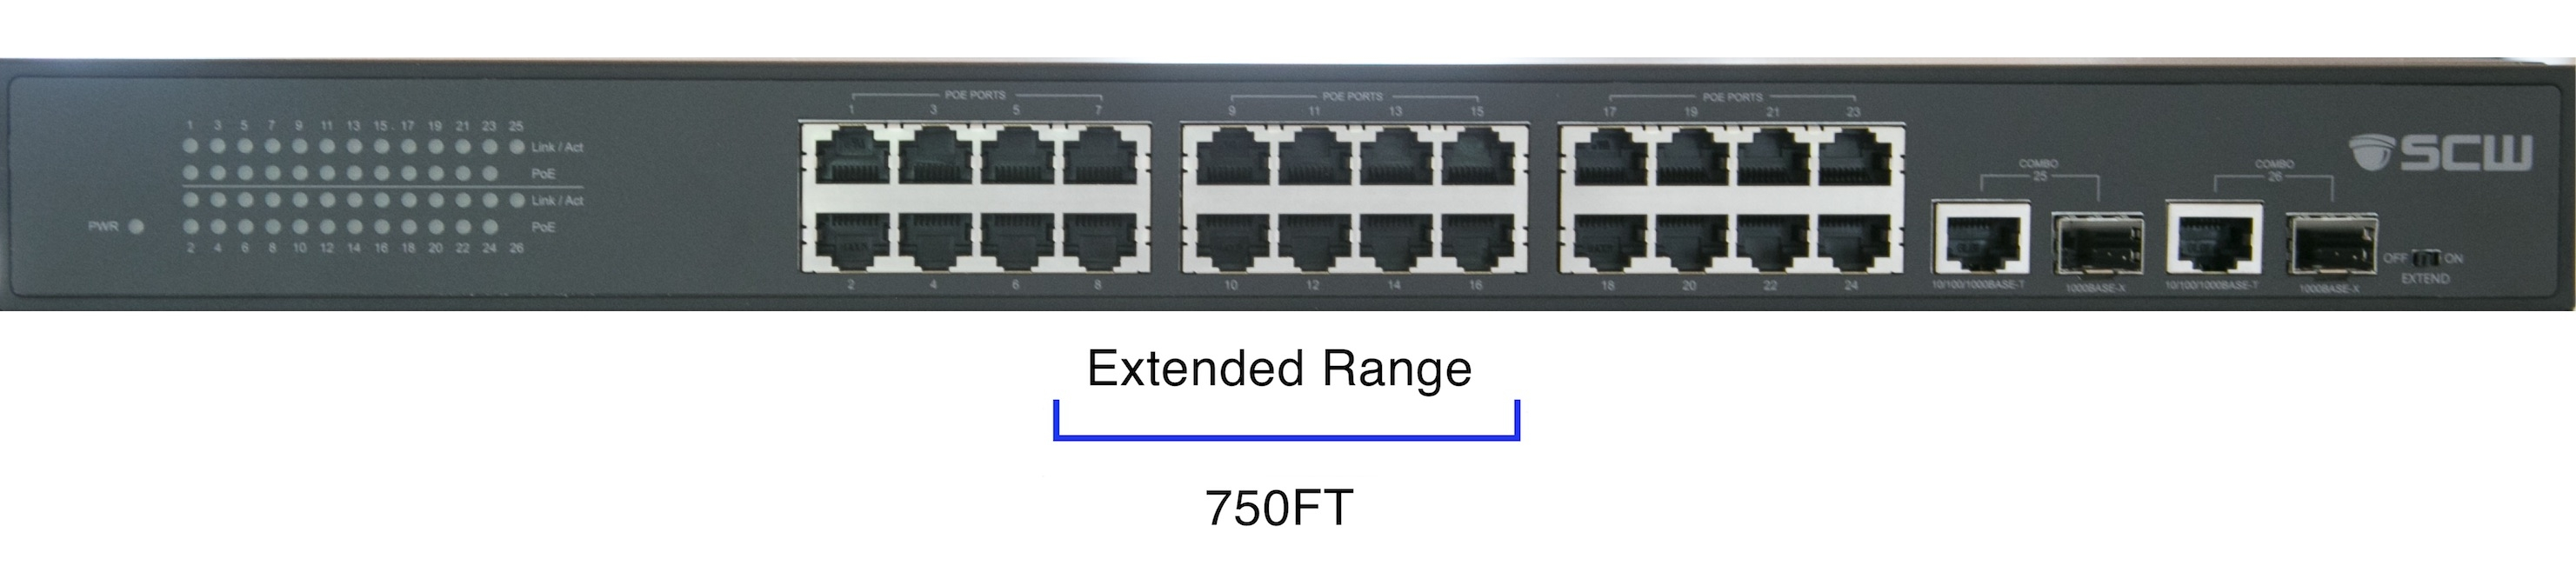 SCW 24 Port PoE Switch with Extended Transmission - SW24PEXT